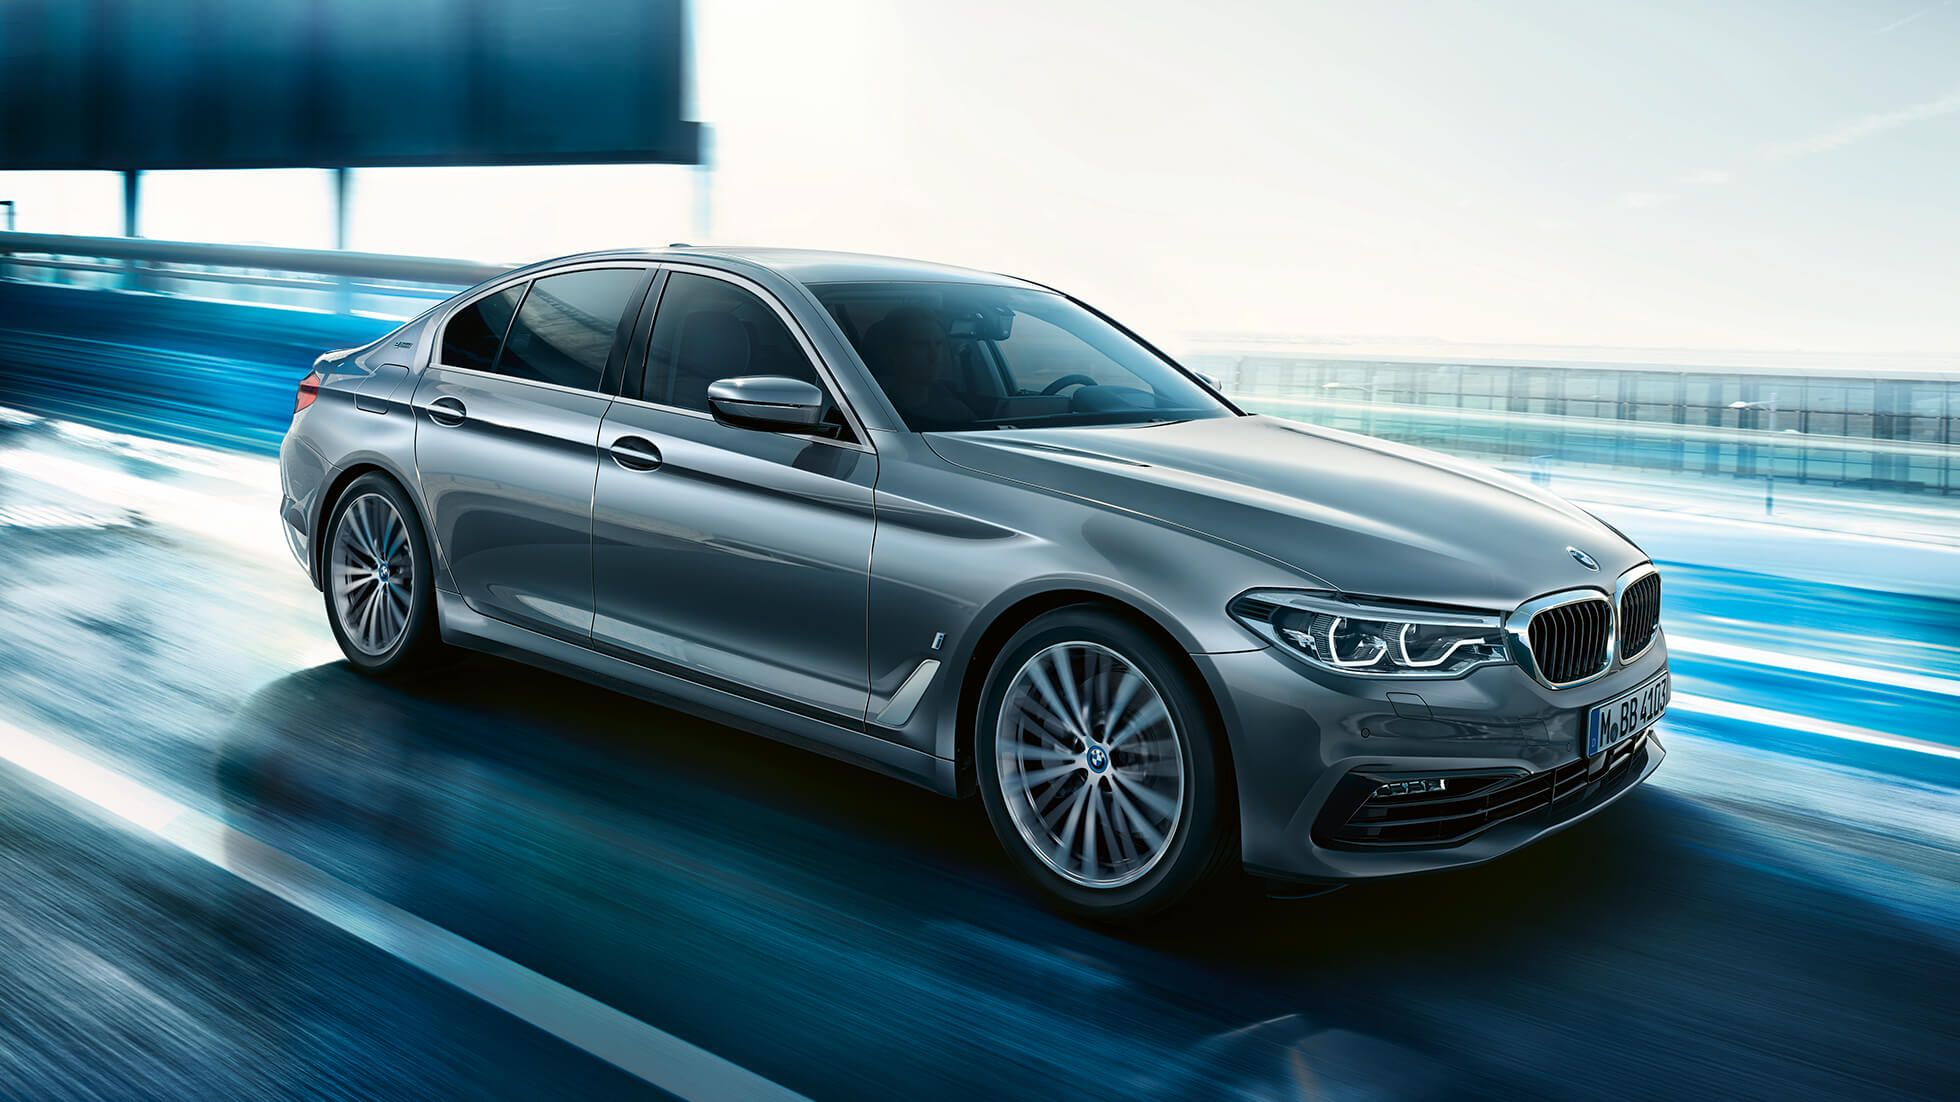 2020 Bmw 545e Plug In Hybrid With 394 Horsepower Coming With 5 Series Facelift In 2020 Bmw Bmw 5 Series New Bmw